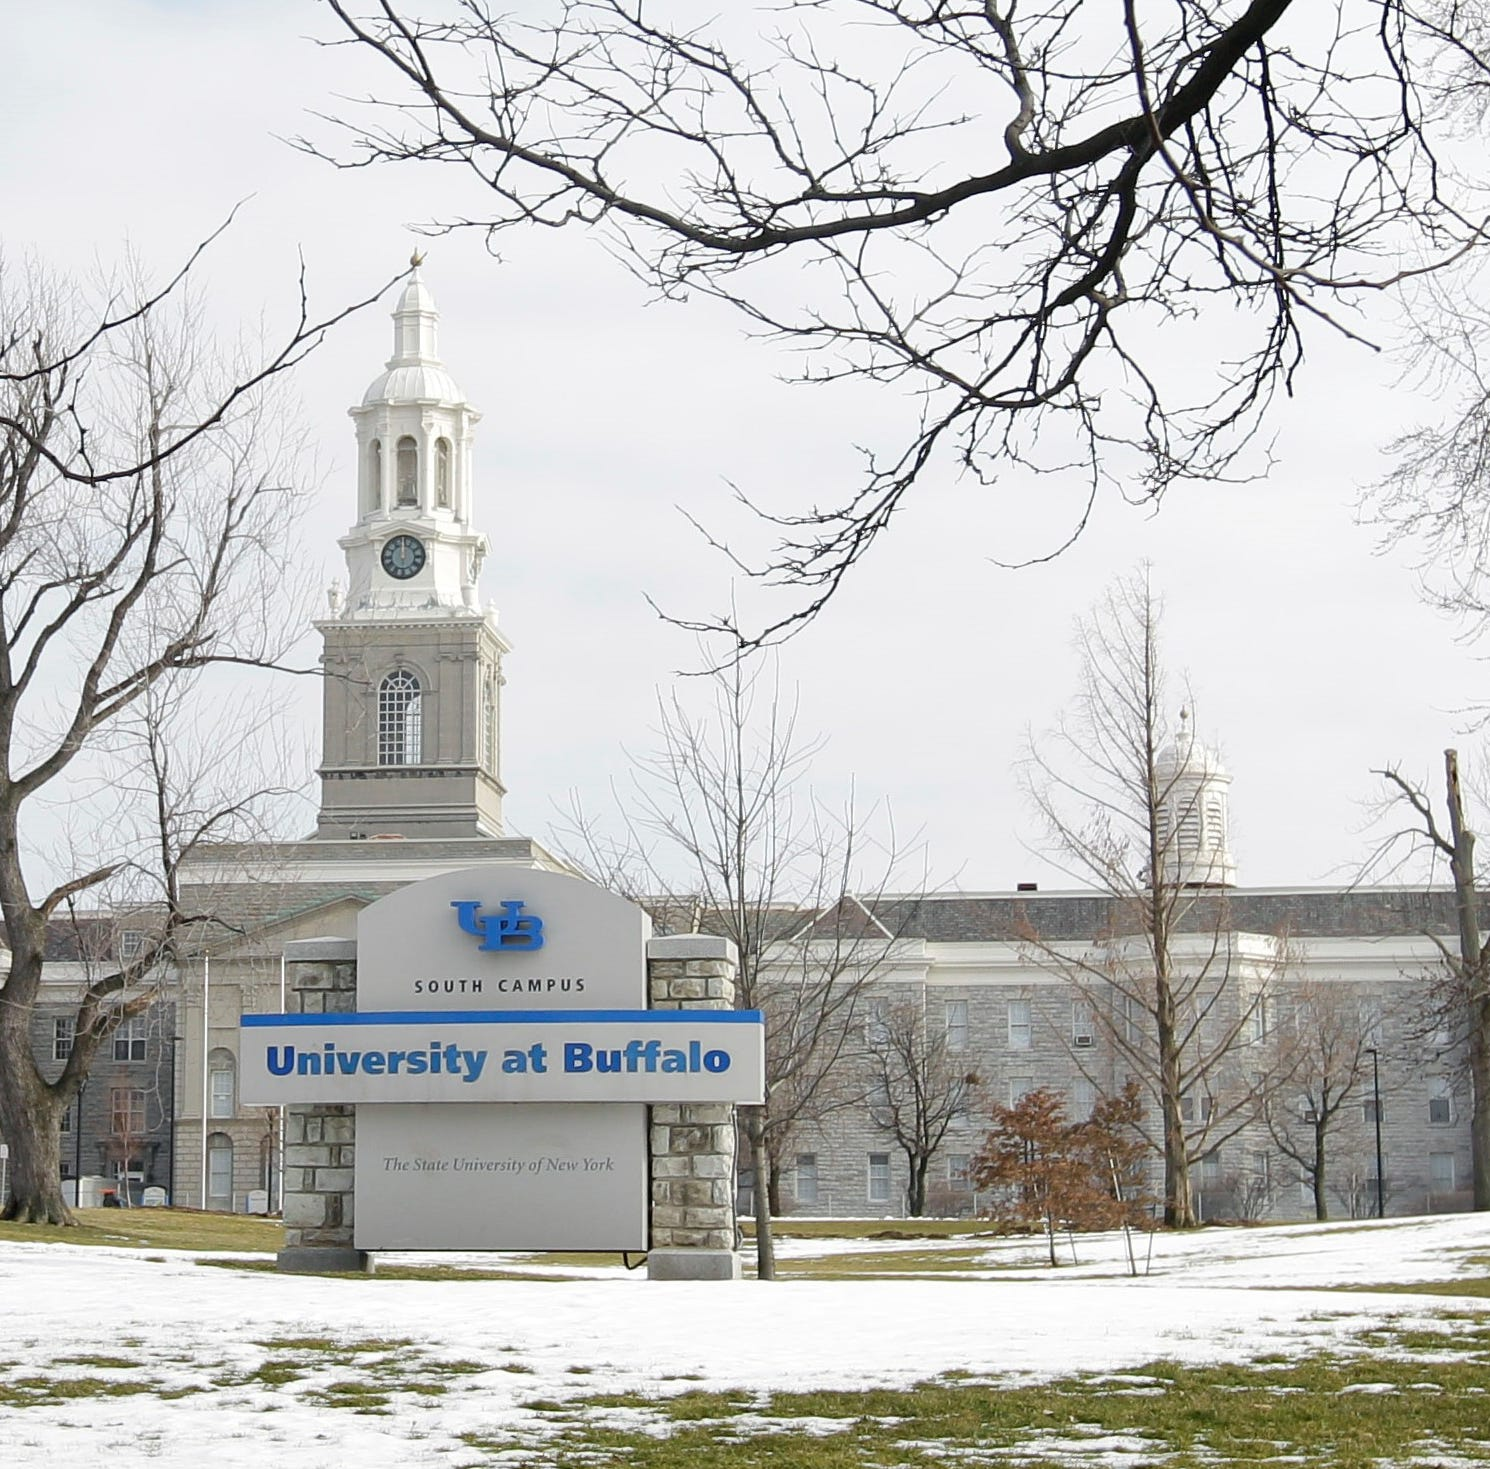 University at Buffalo student dies 6 days after injury in potential hazing